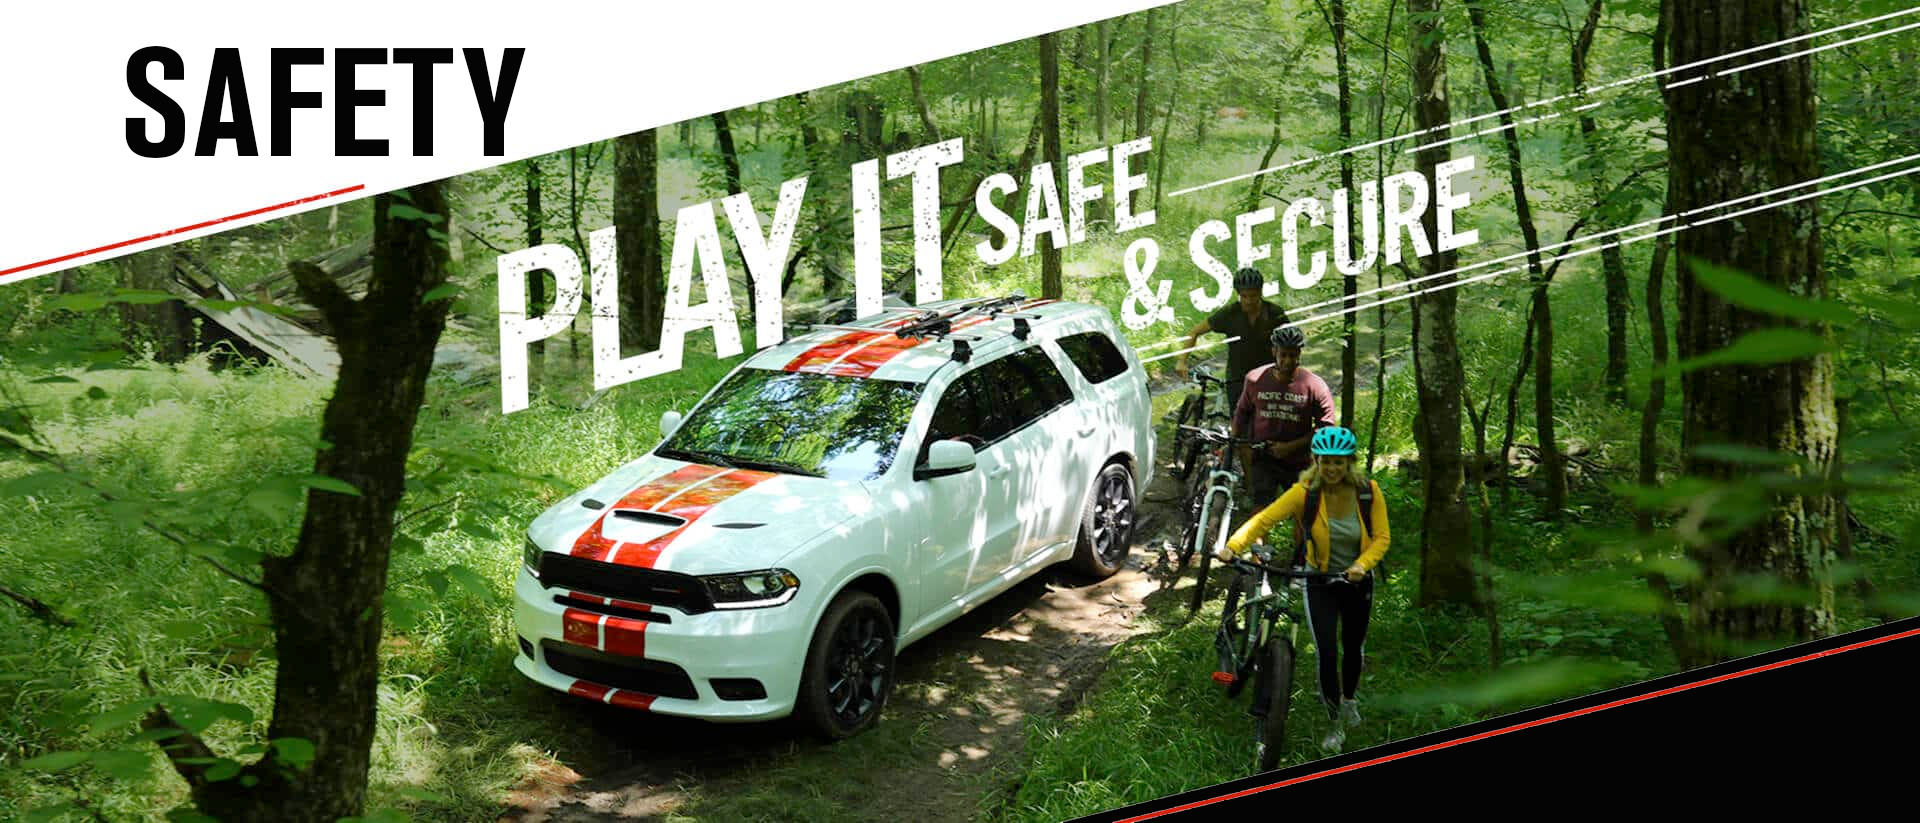 2020 Dodge Durango - Safety